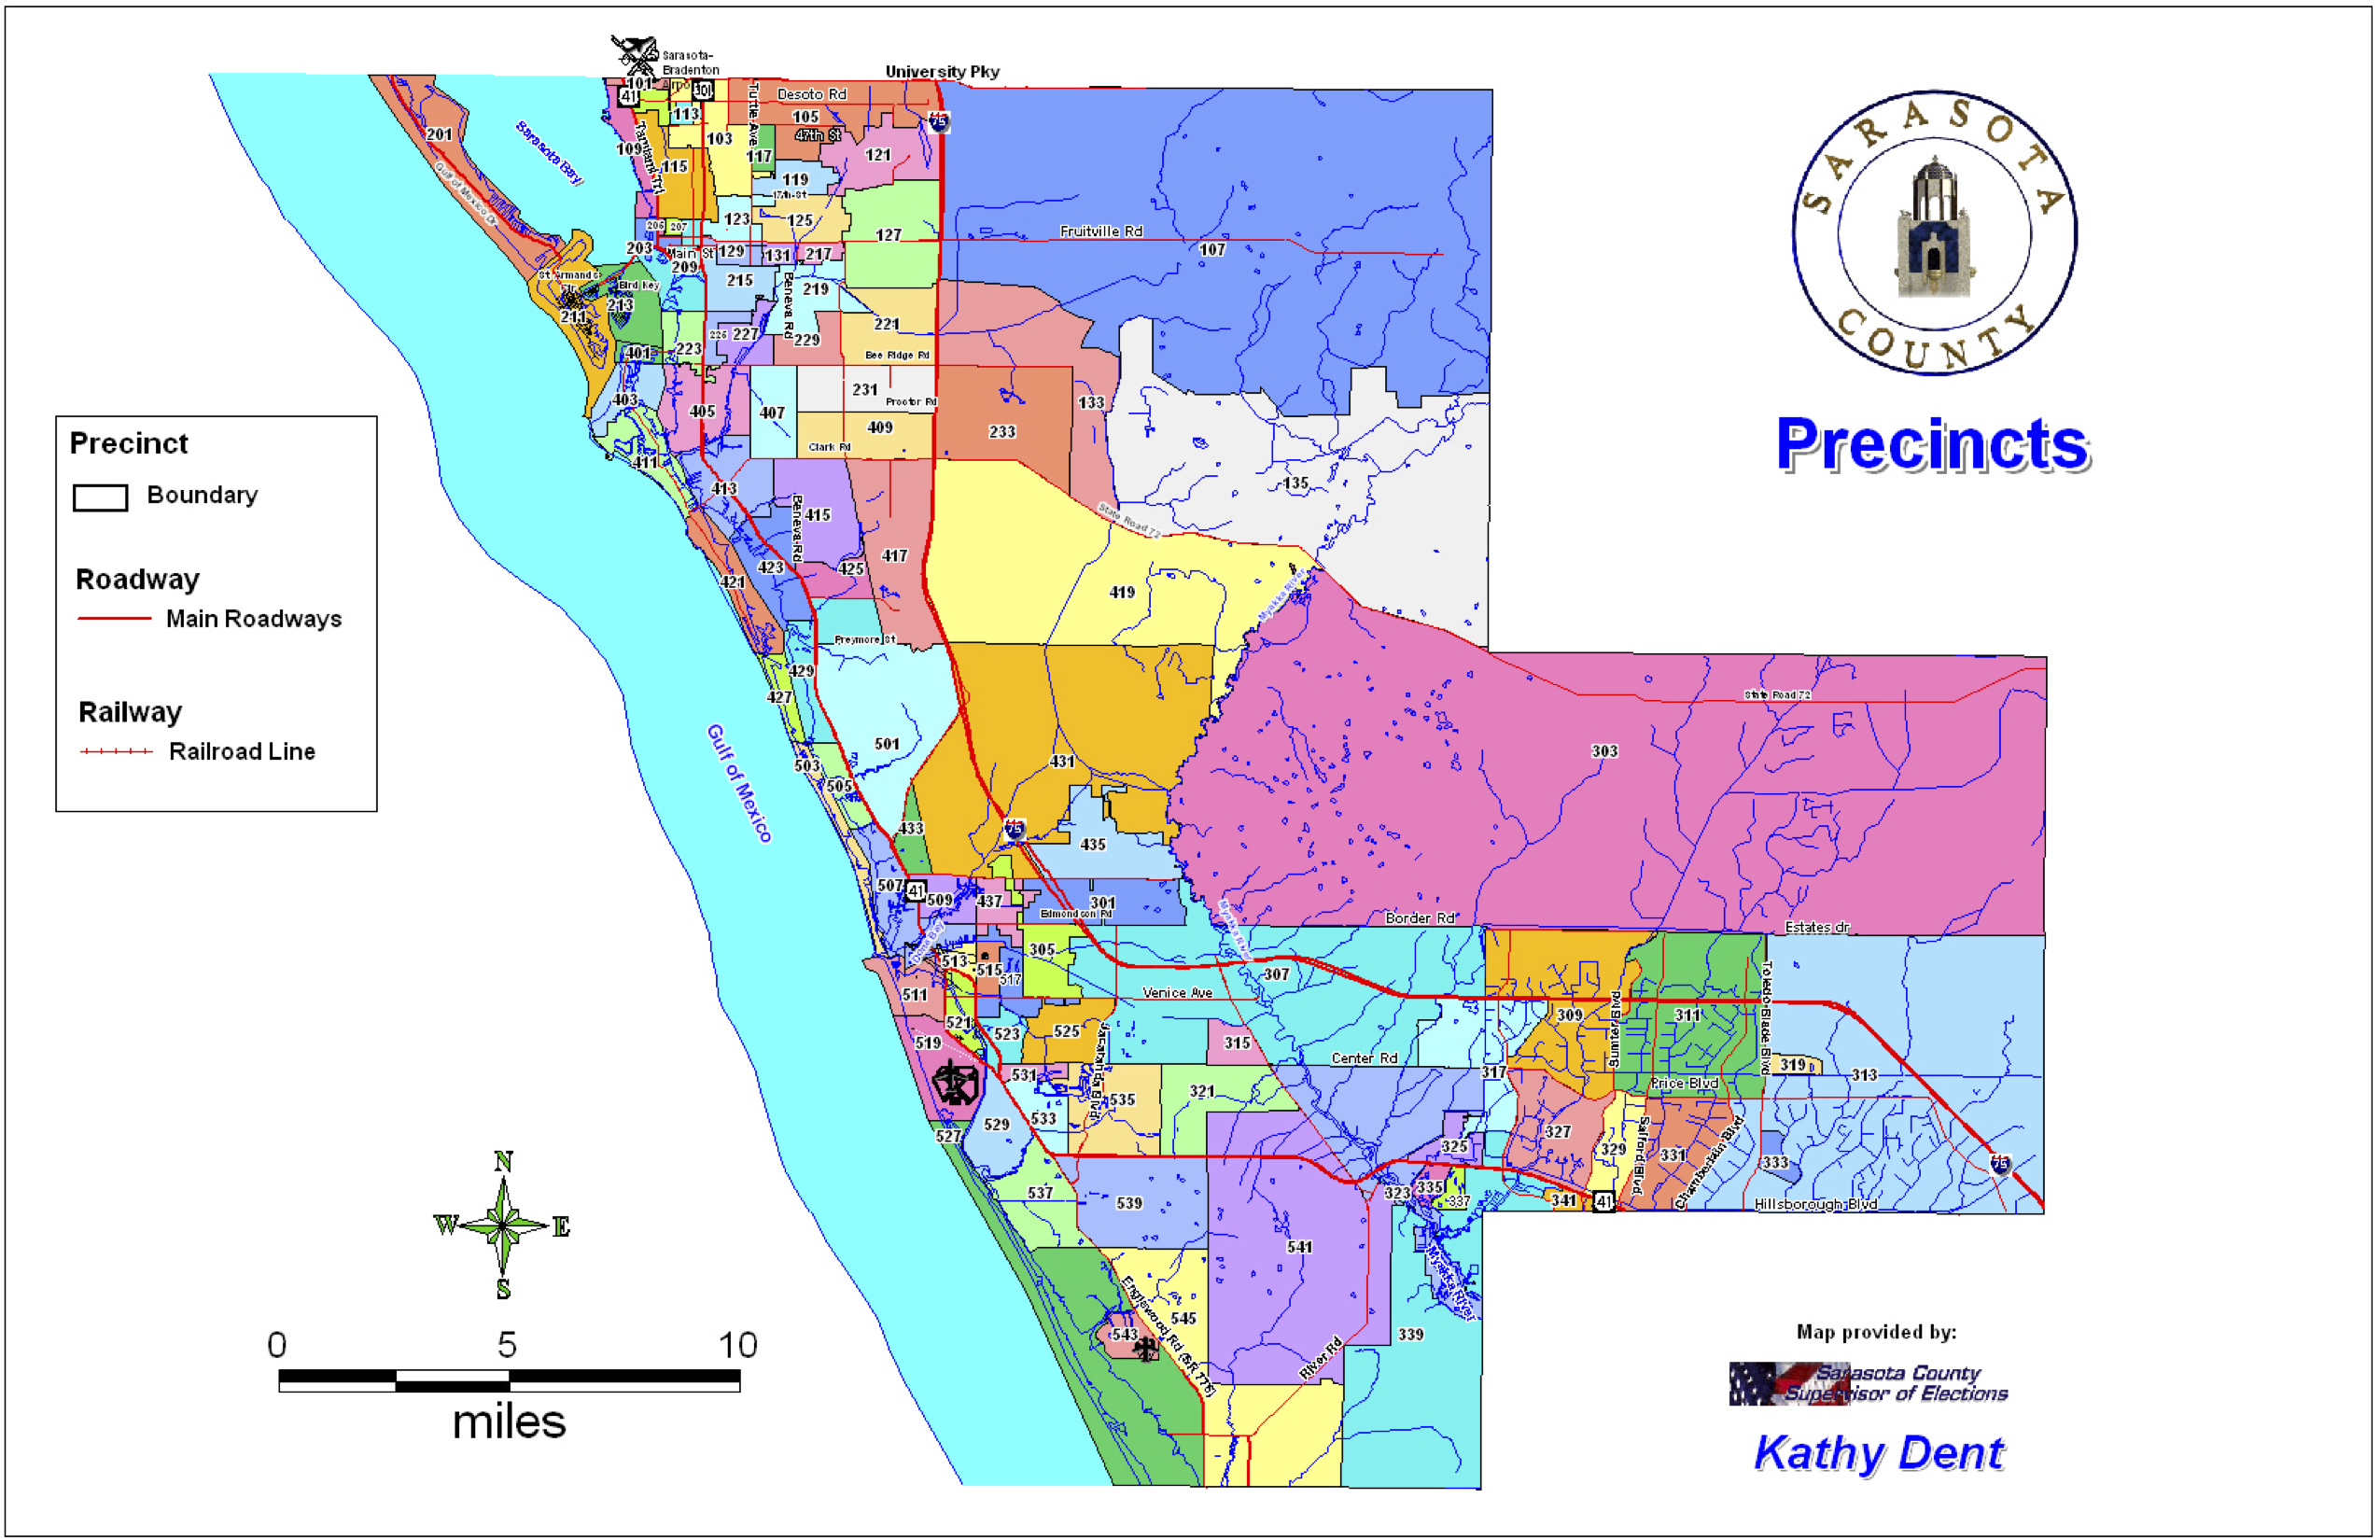 Sarasota County Map | Park Ideas - Map Of Sarasota Florida Neighborhoods